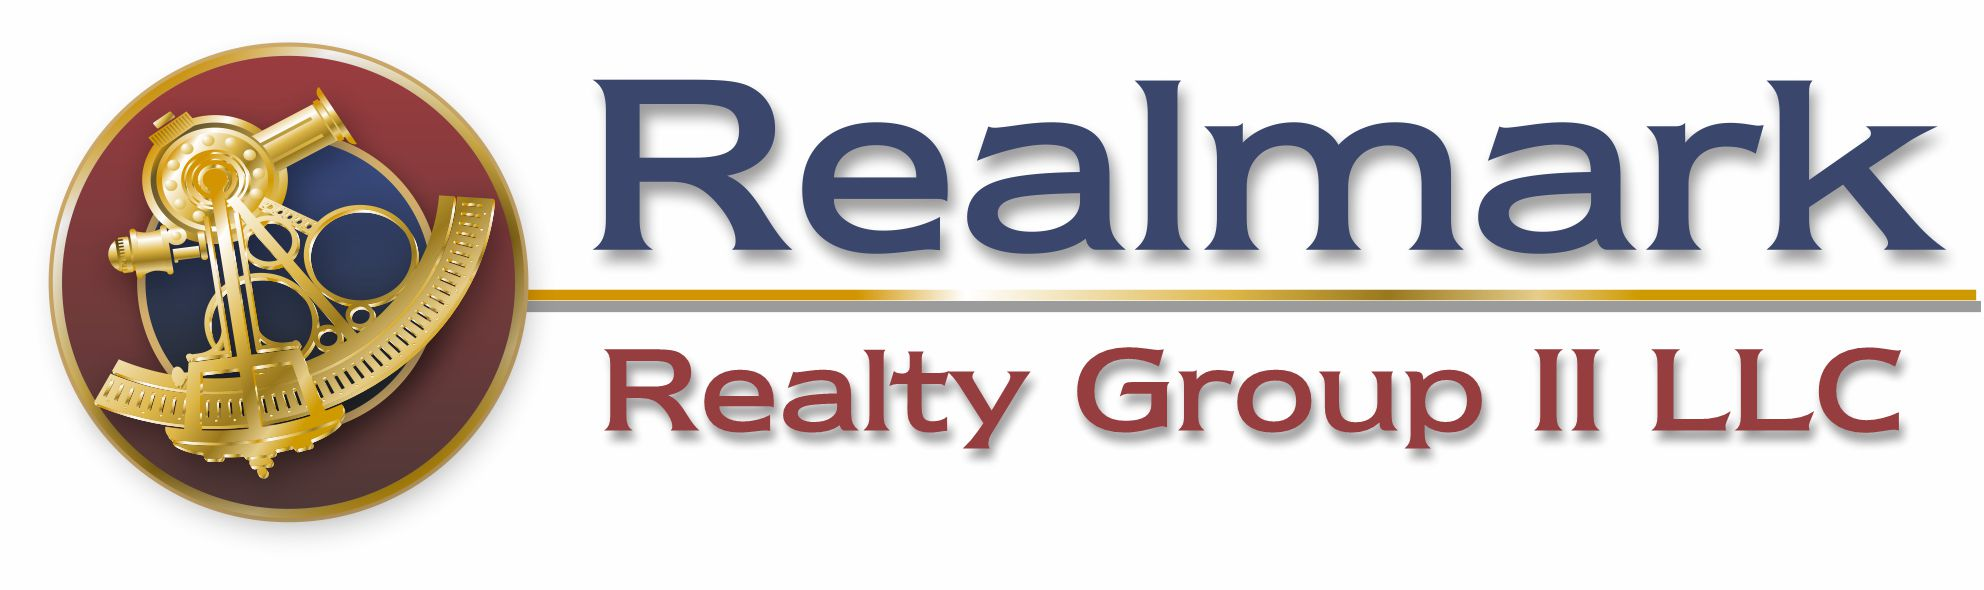 Realmark Realty Group II LLC